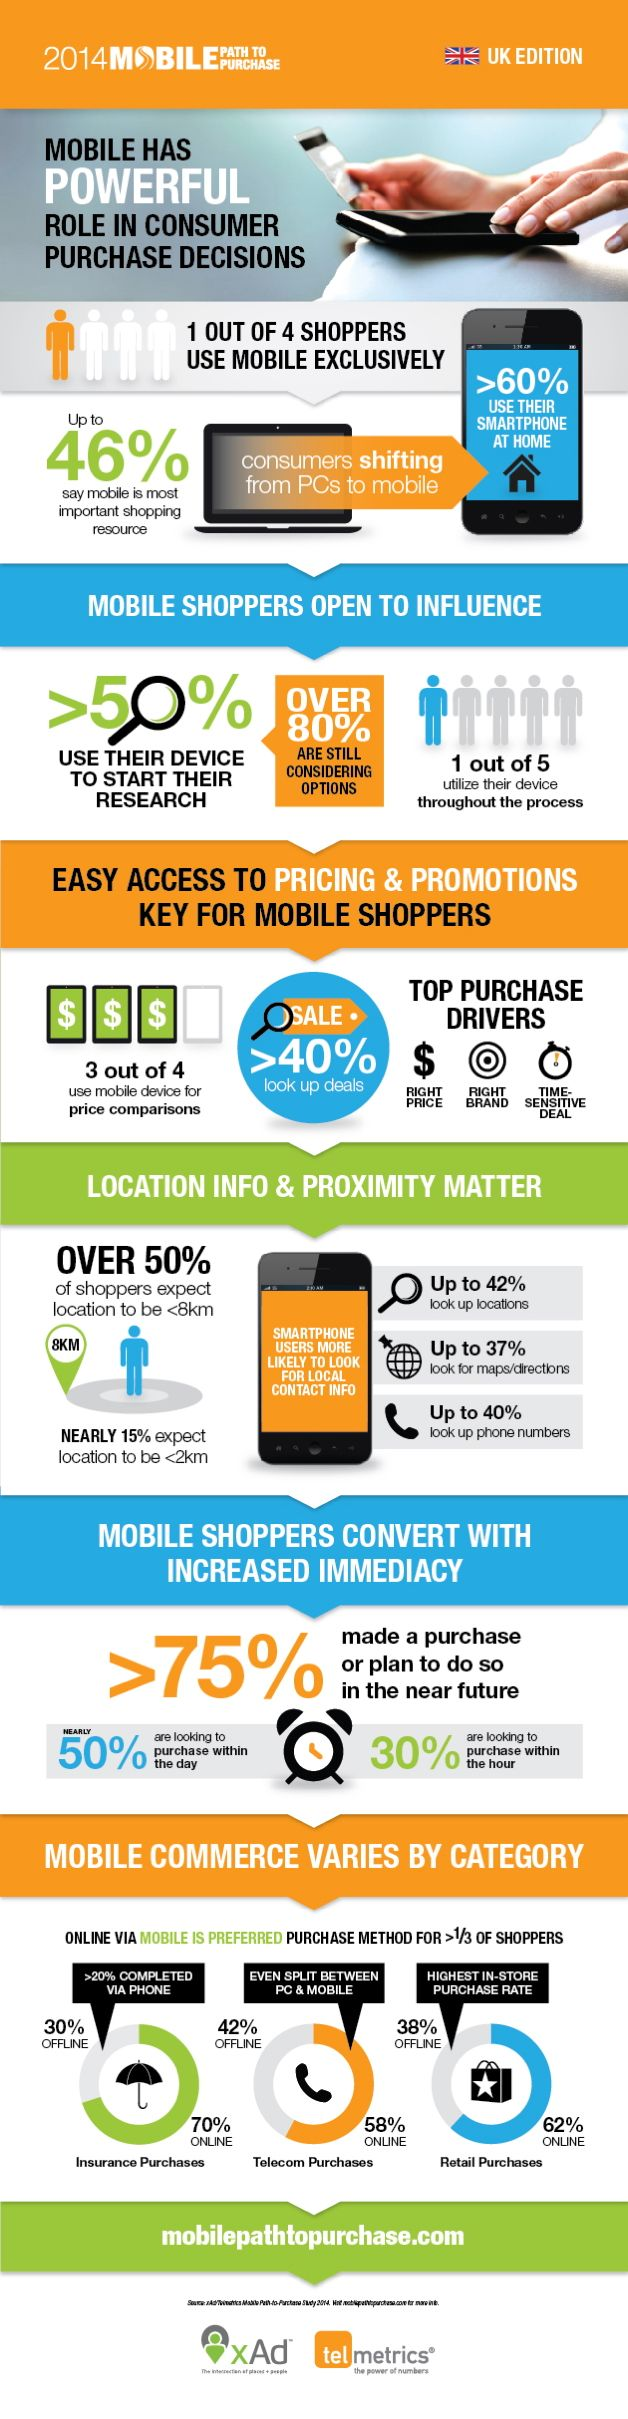 INFOGRAPHIC: Mobile's role in consumer purchase decisions   Mobile Industry   Mobile Entertainment